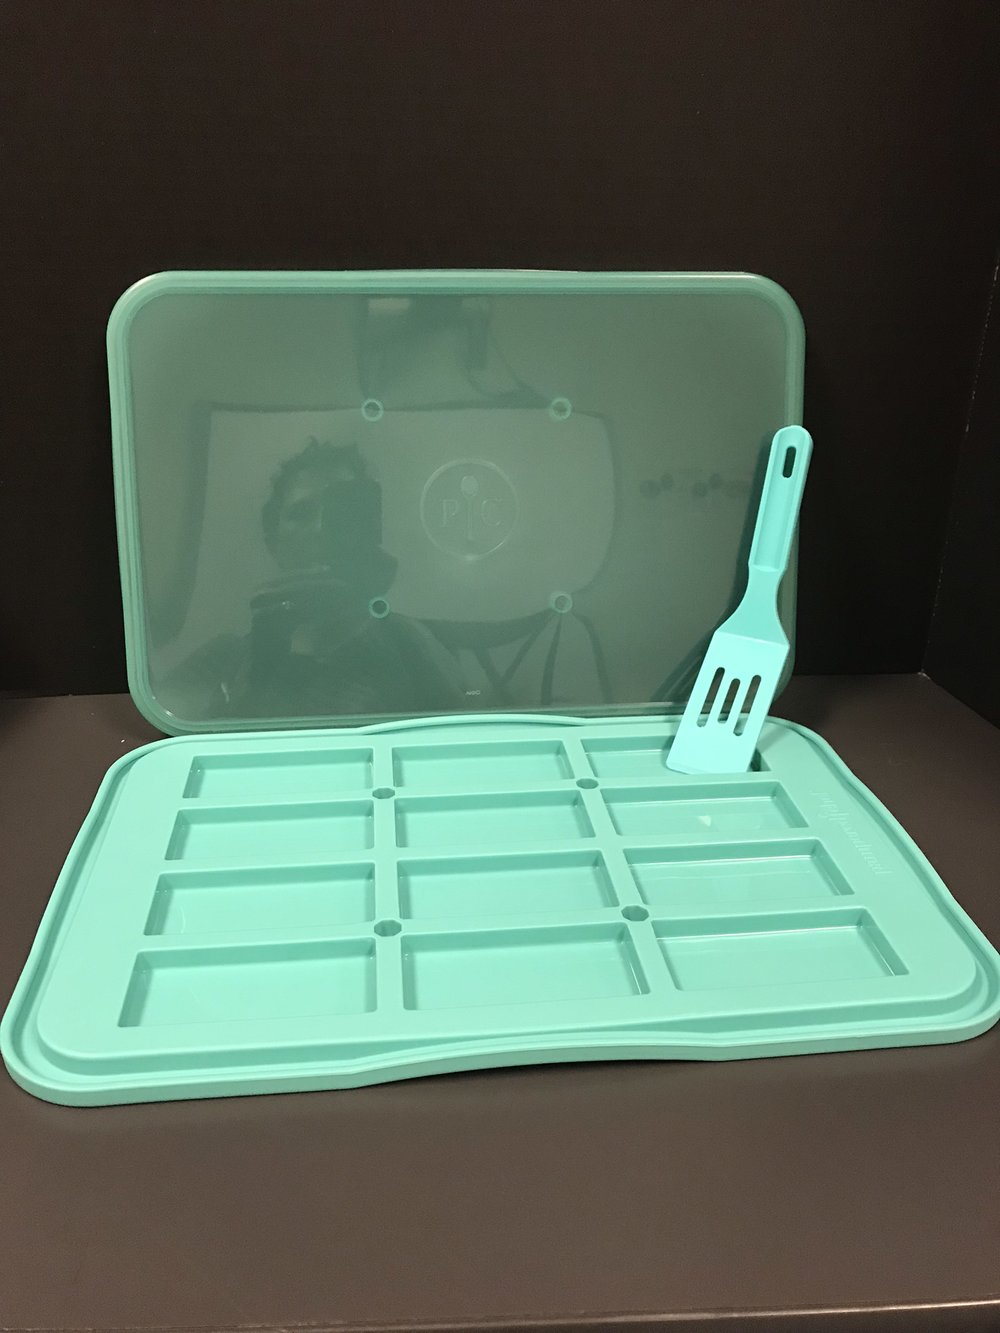 Pampered Chef Snack tray set  - value $25